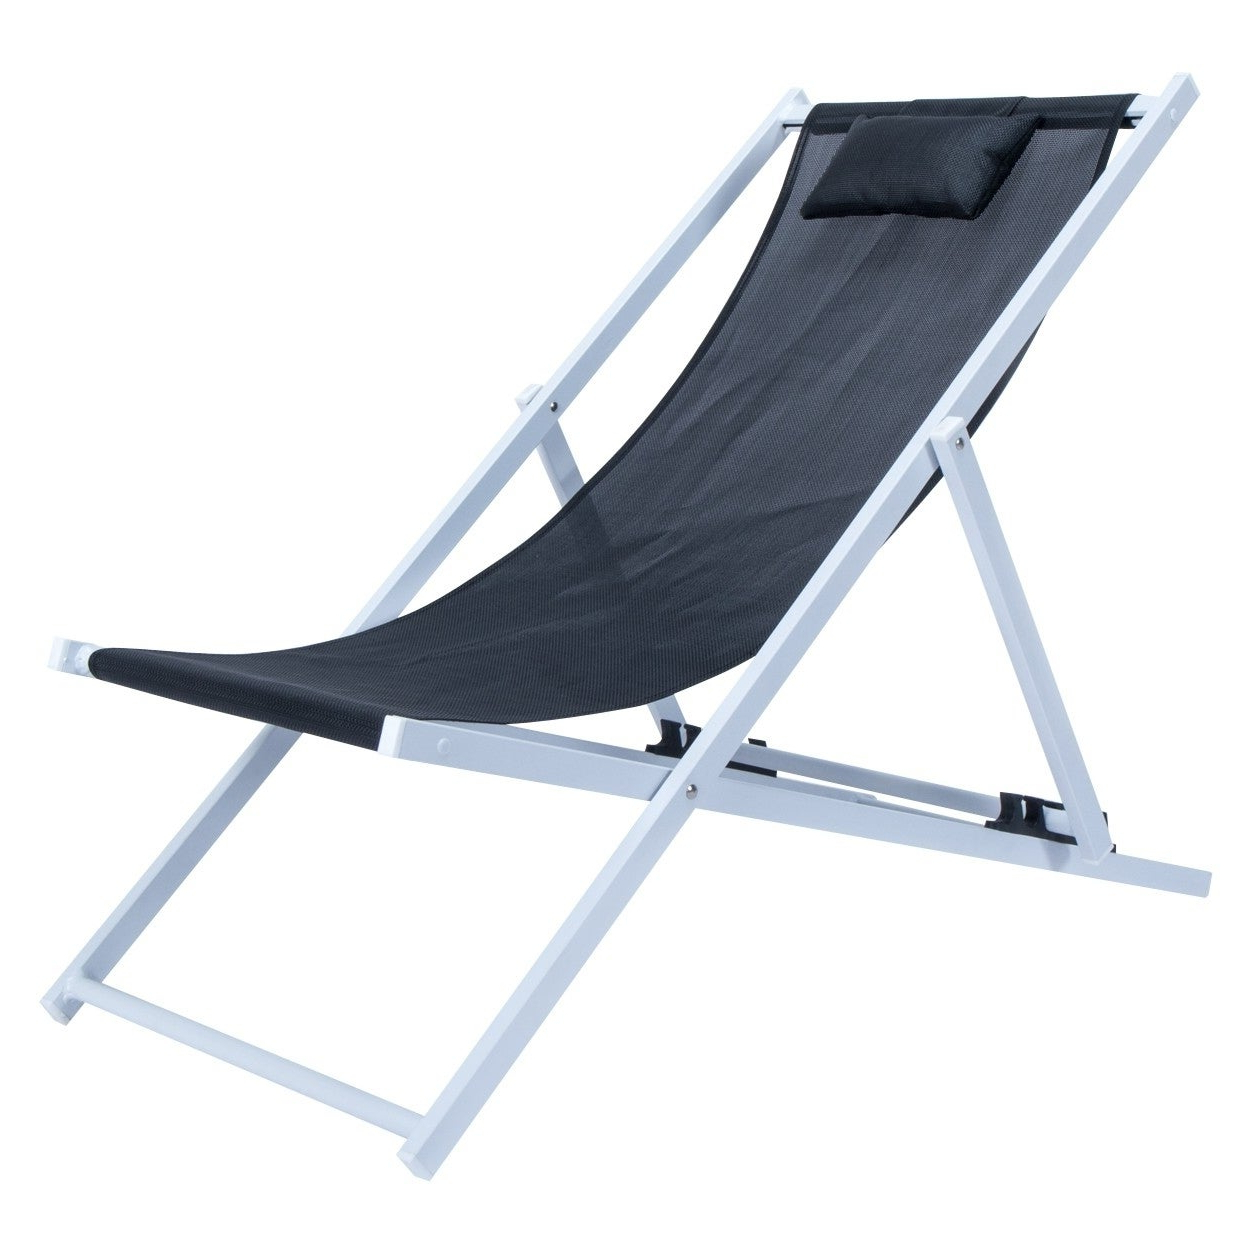 Widely Used Sunset Patio Sling Folding Chairs With Headrest Within Leisuremod Sunset Patio Sling Folding Chair Adjustable With Headrest (View 3 of 25)